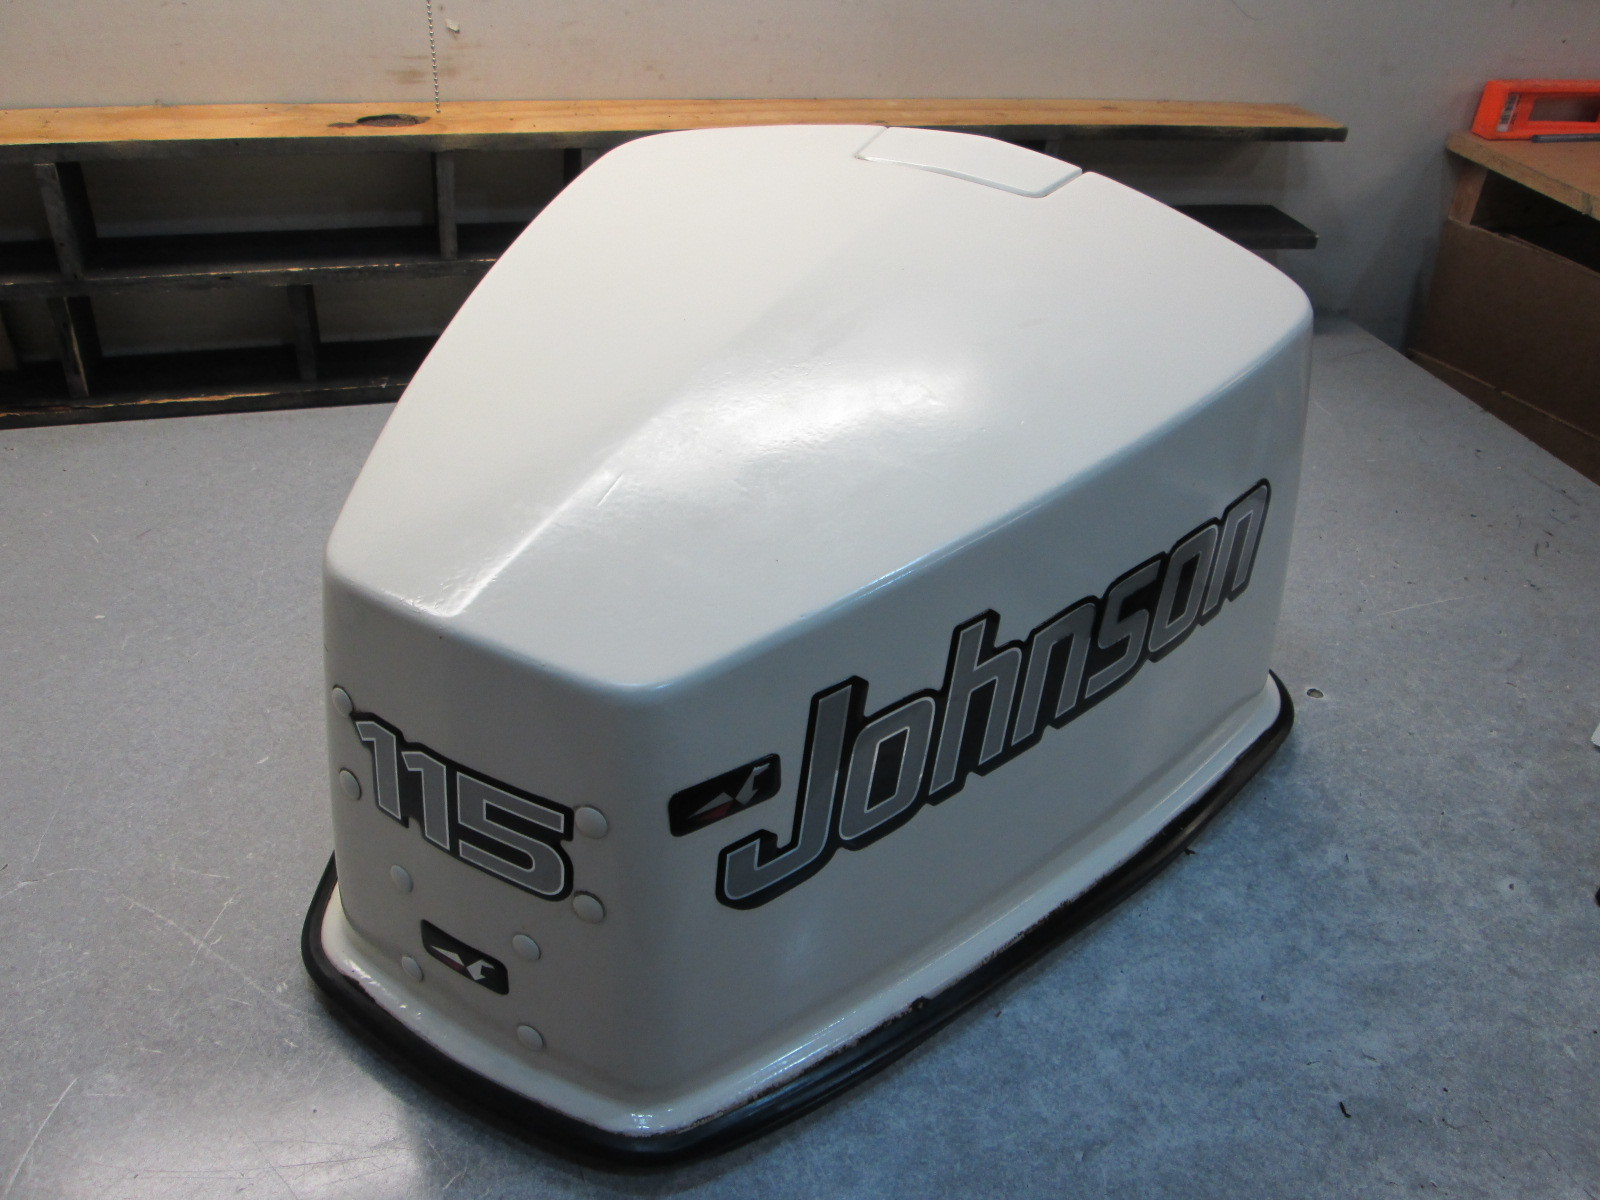 385646 1973 115 Hp Johnson Outboard Top Motor Cover Cowl